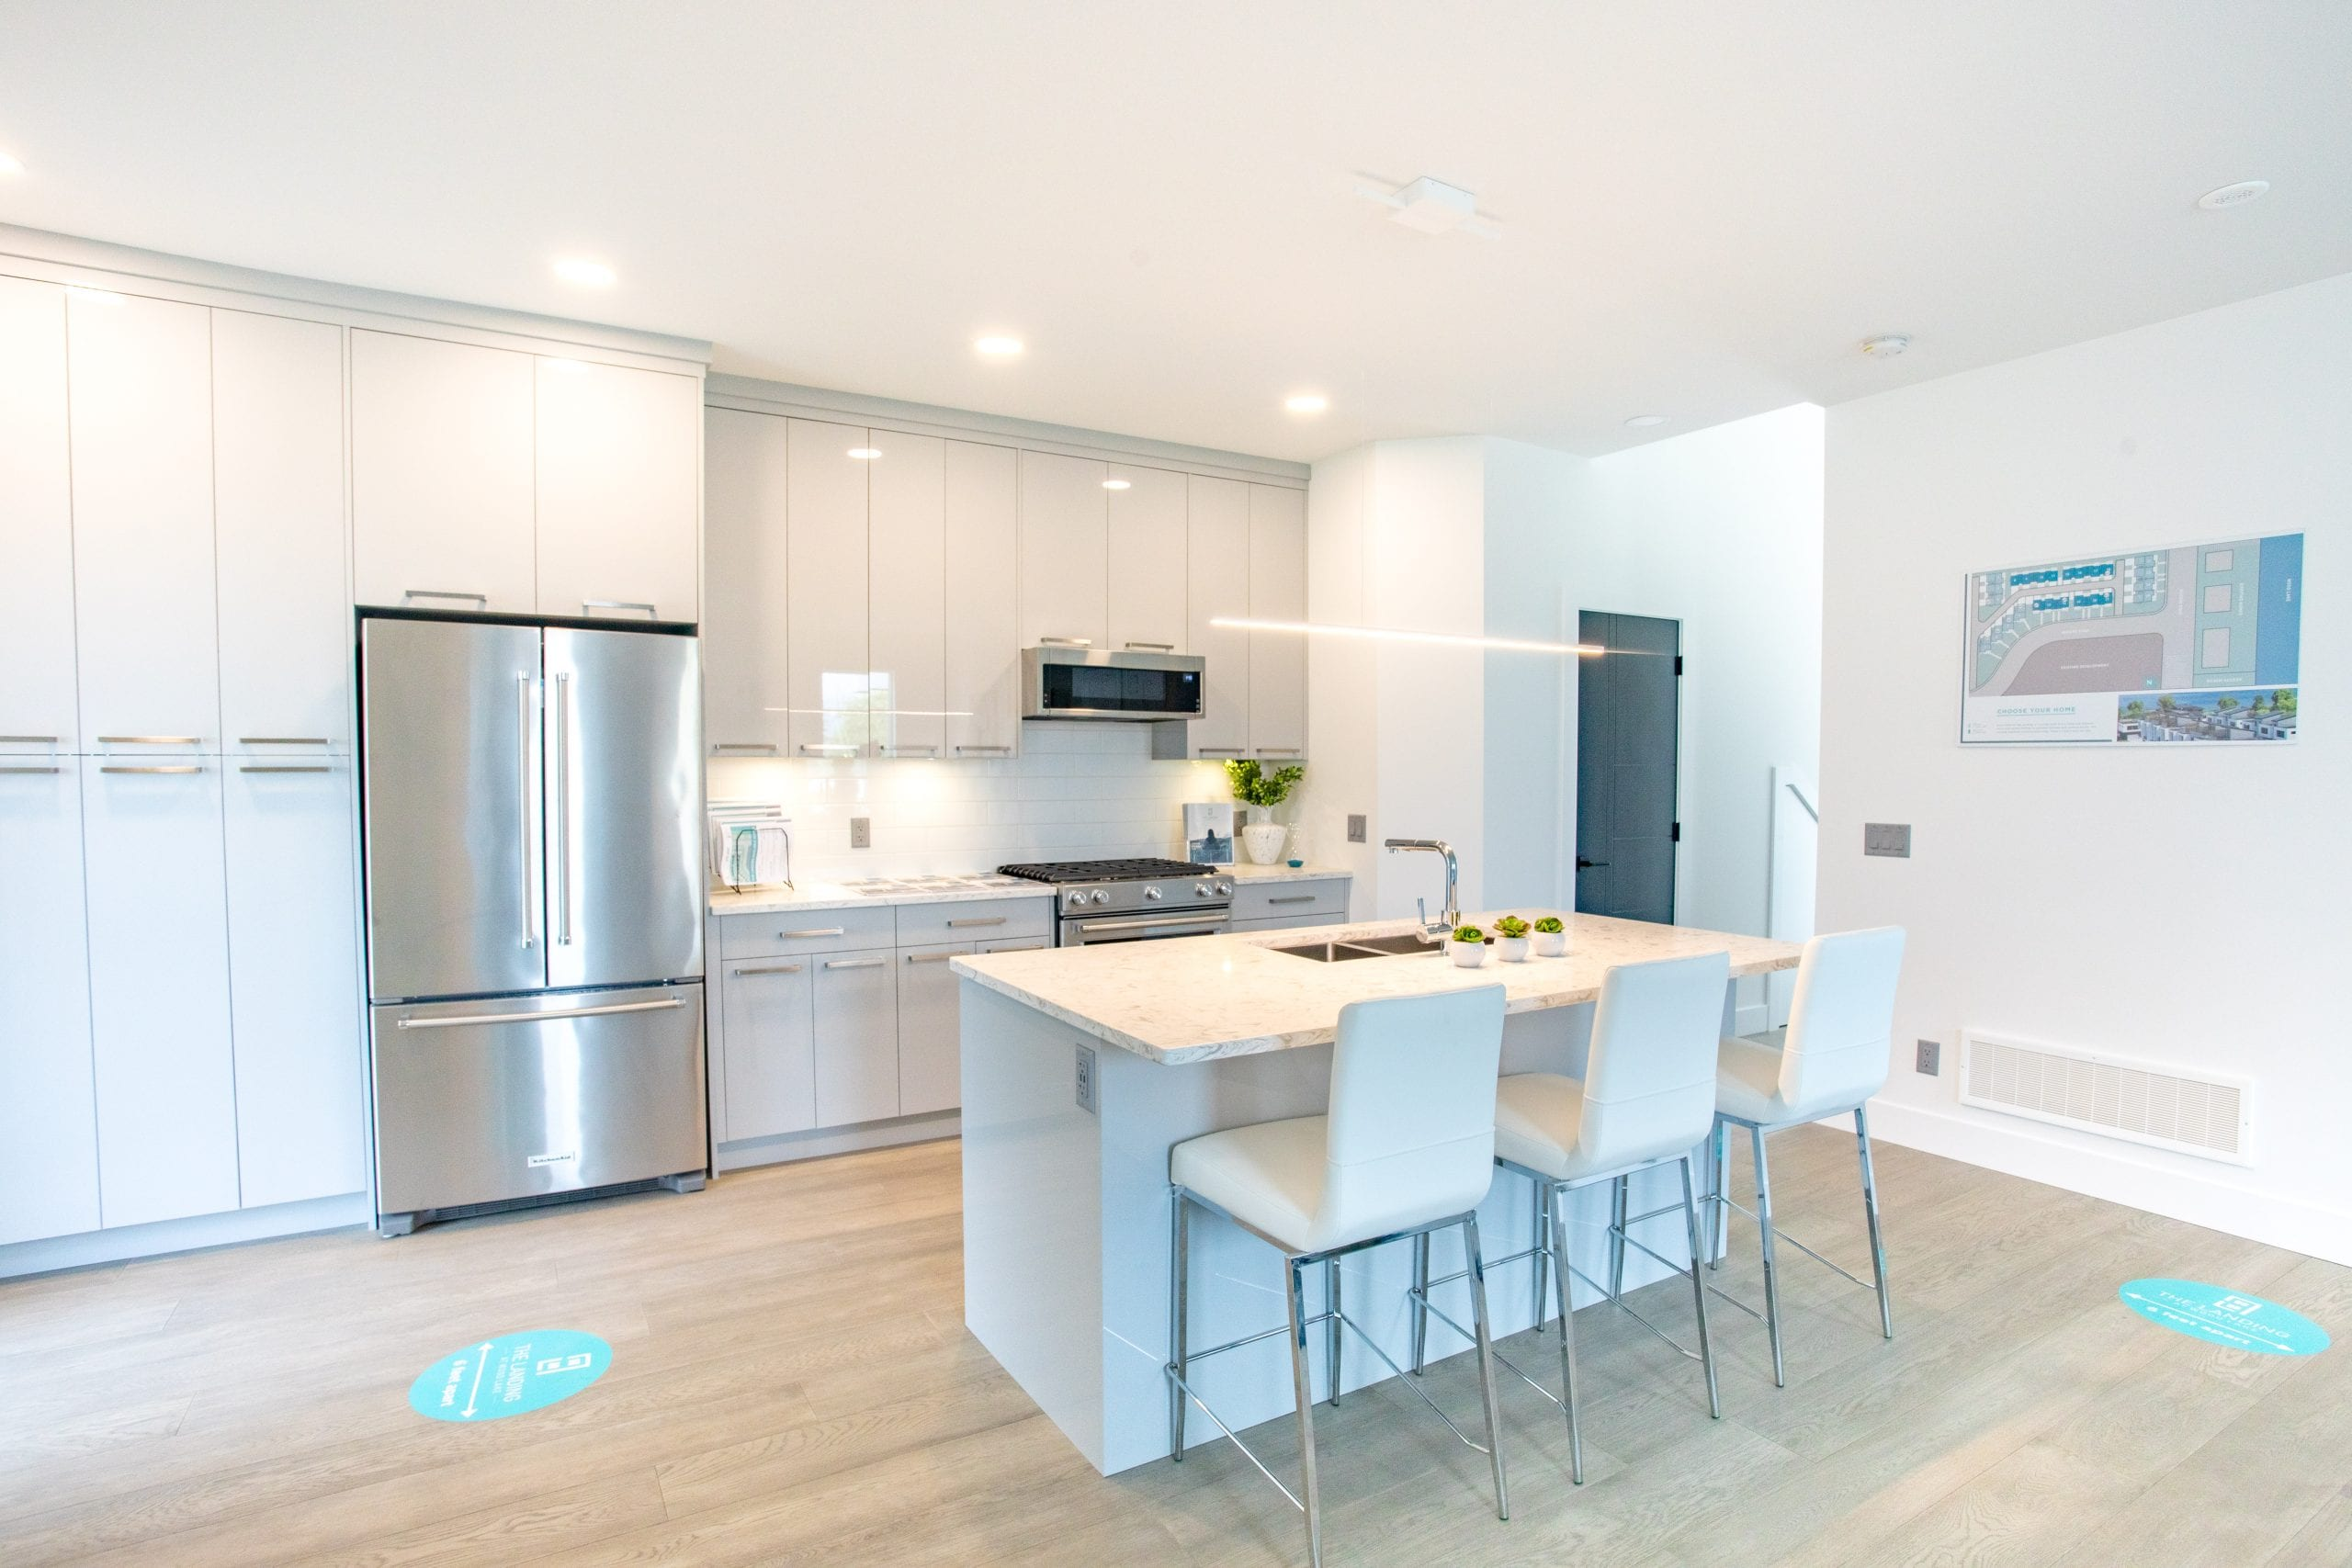 Sleek kitchen design with quartz, stainless KitchenAid appliances, high gloss cabinetry and hardwood floors.